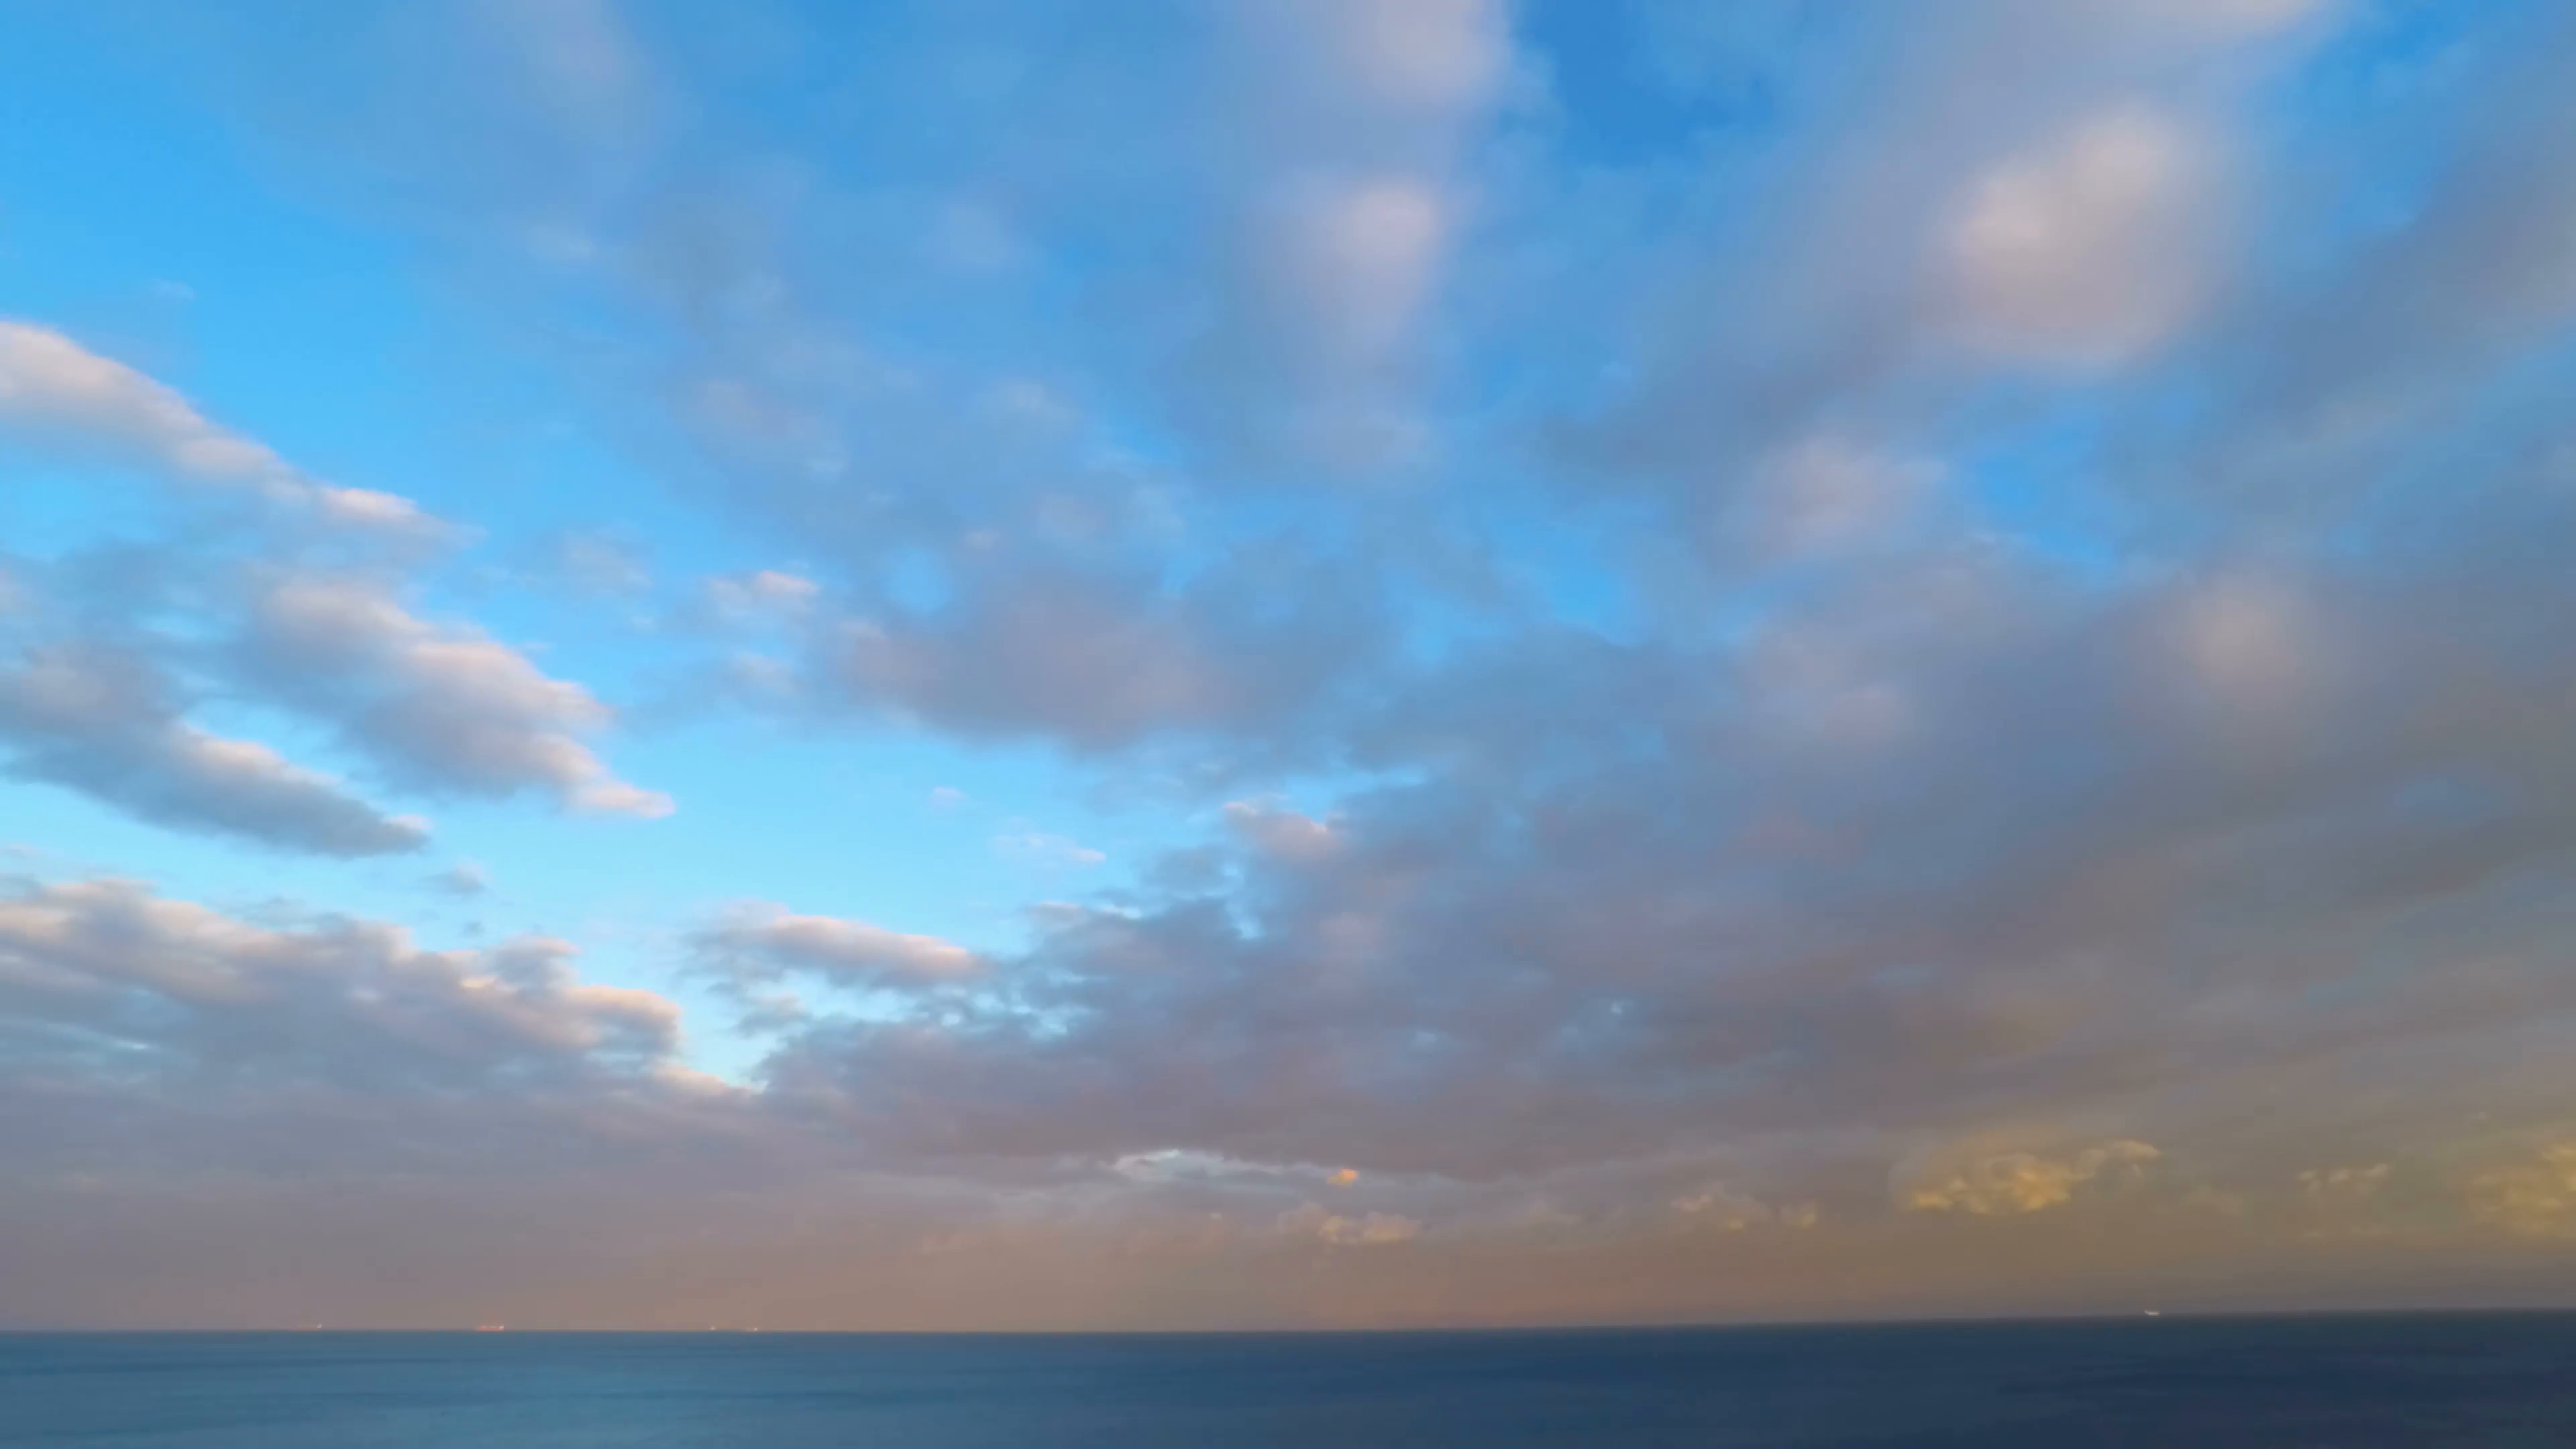 Cloudy Sunset Sky over the Sea. Timelapse. 4K. Stock Video Footage ...